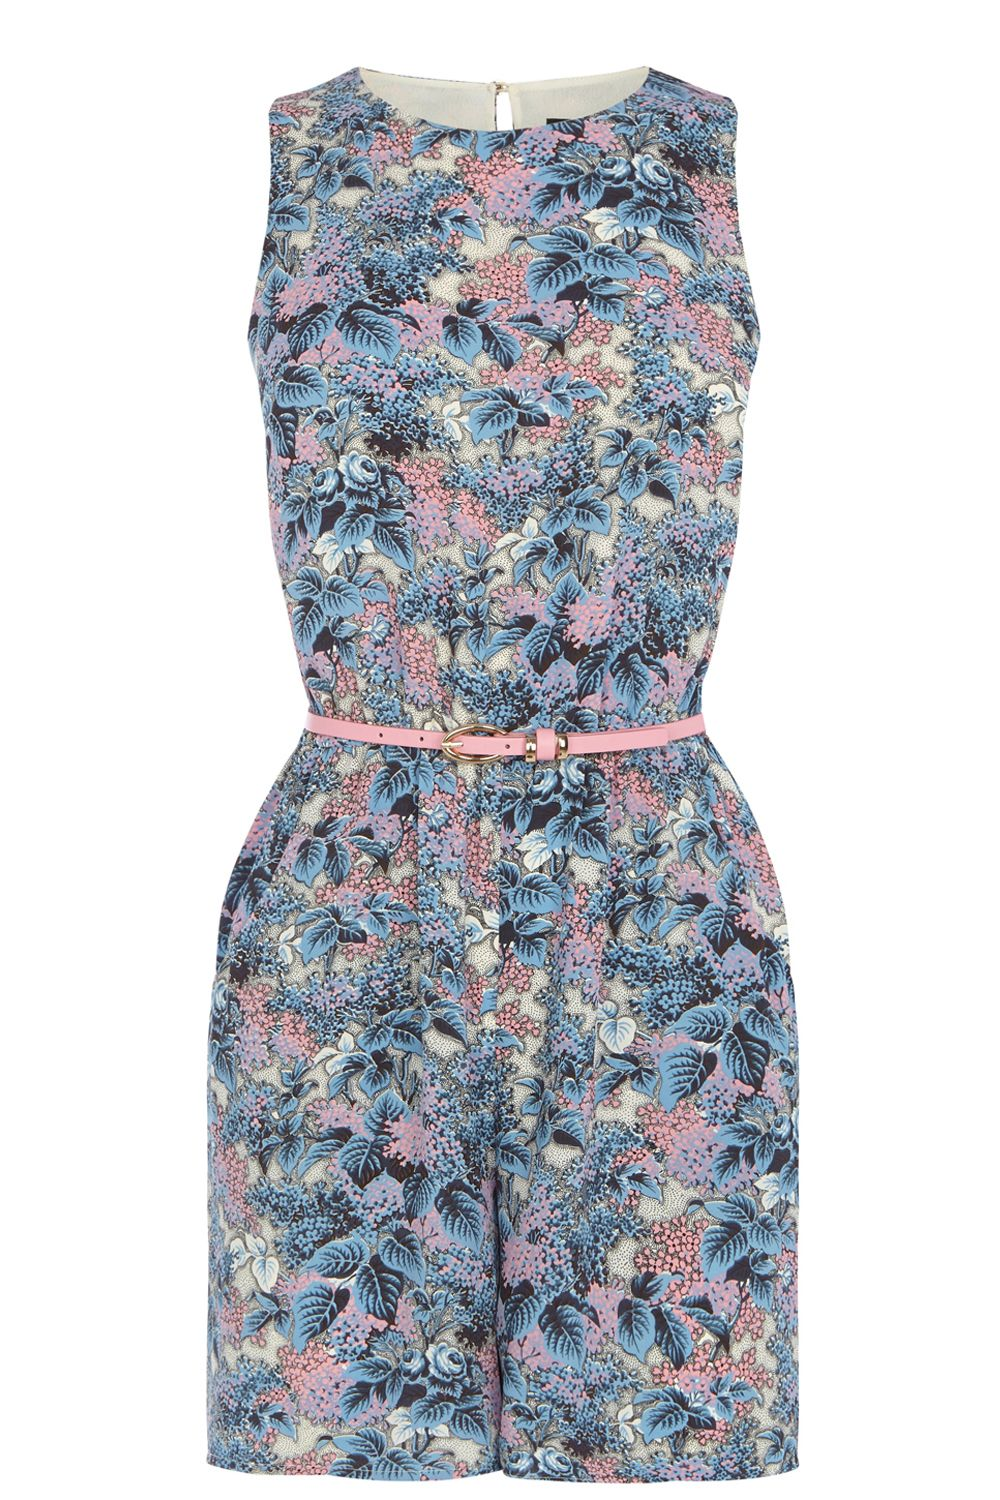 Botanical budlia playsuit